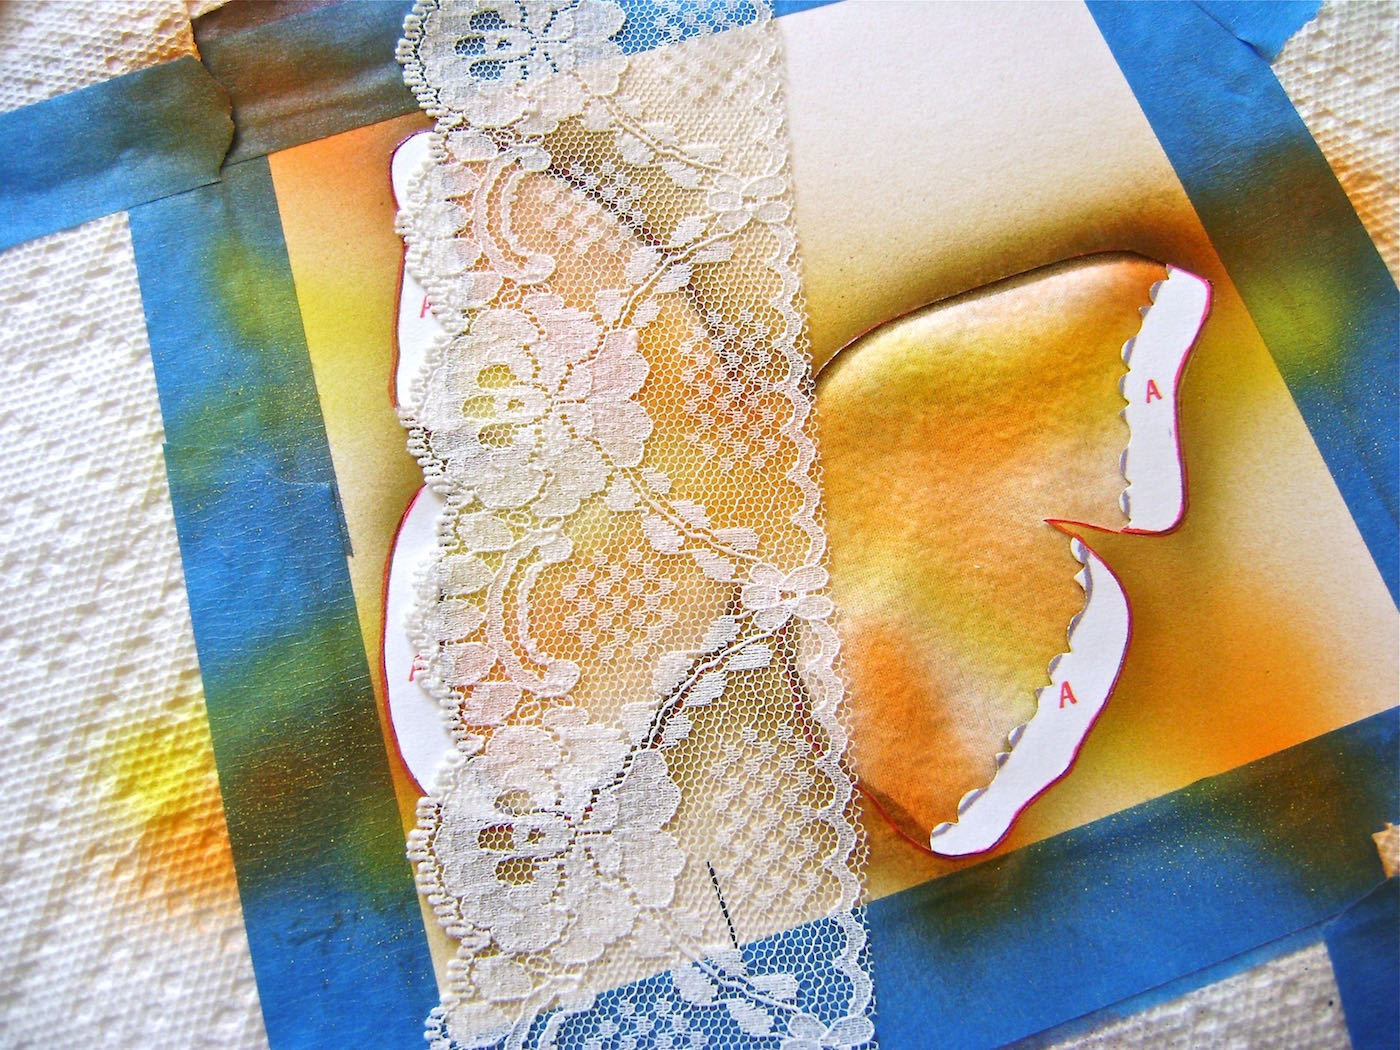 """step 10 - Set aside section """"B"""". Put the four section """"A""""s back in place. Position a decorative stencil or lace over one wing after applying adhesive to the back. Spray with Bronze Have More Fun paint to create designs inside the wings. Repeat on the other wing."""